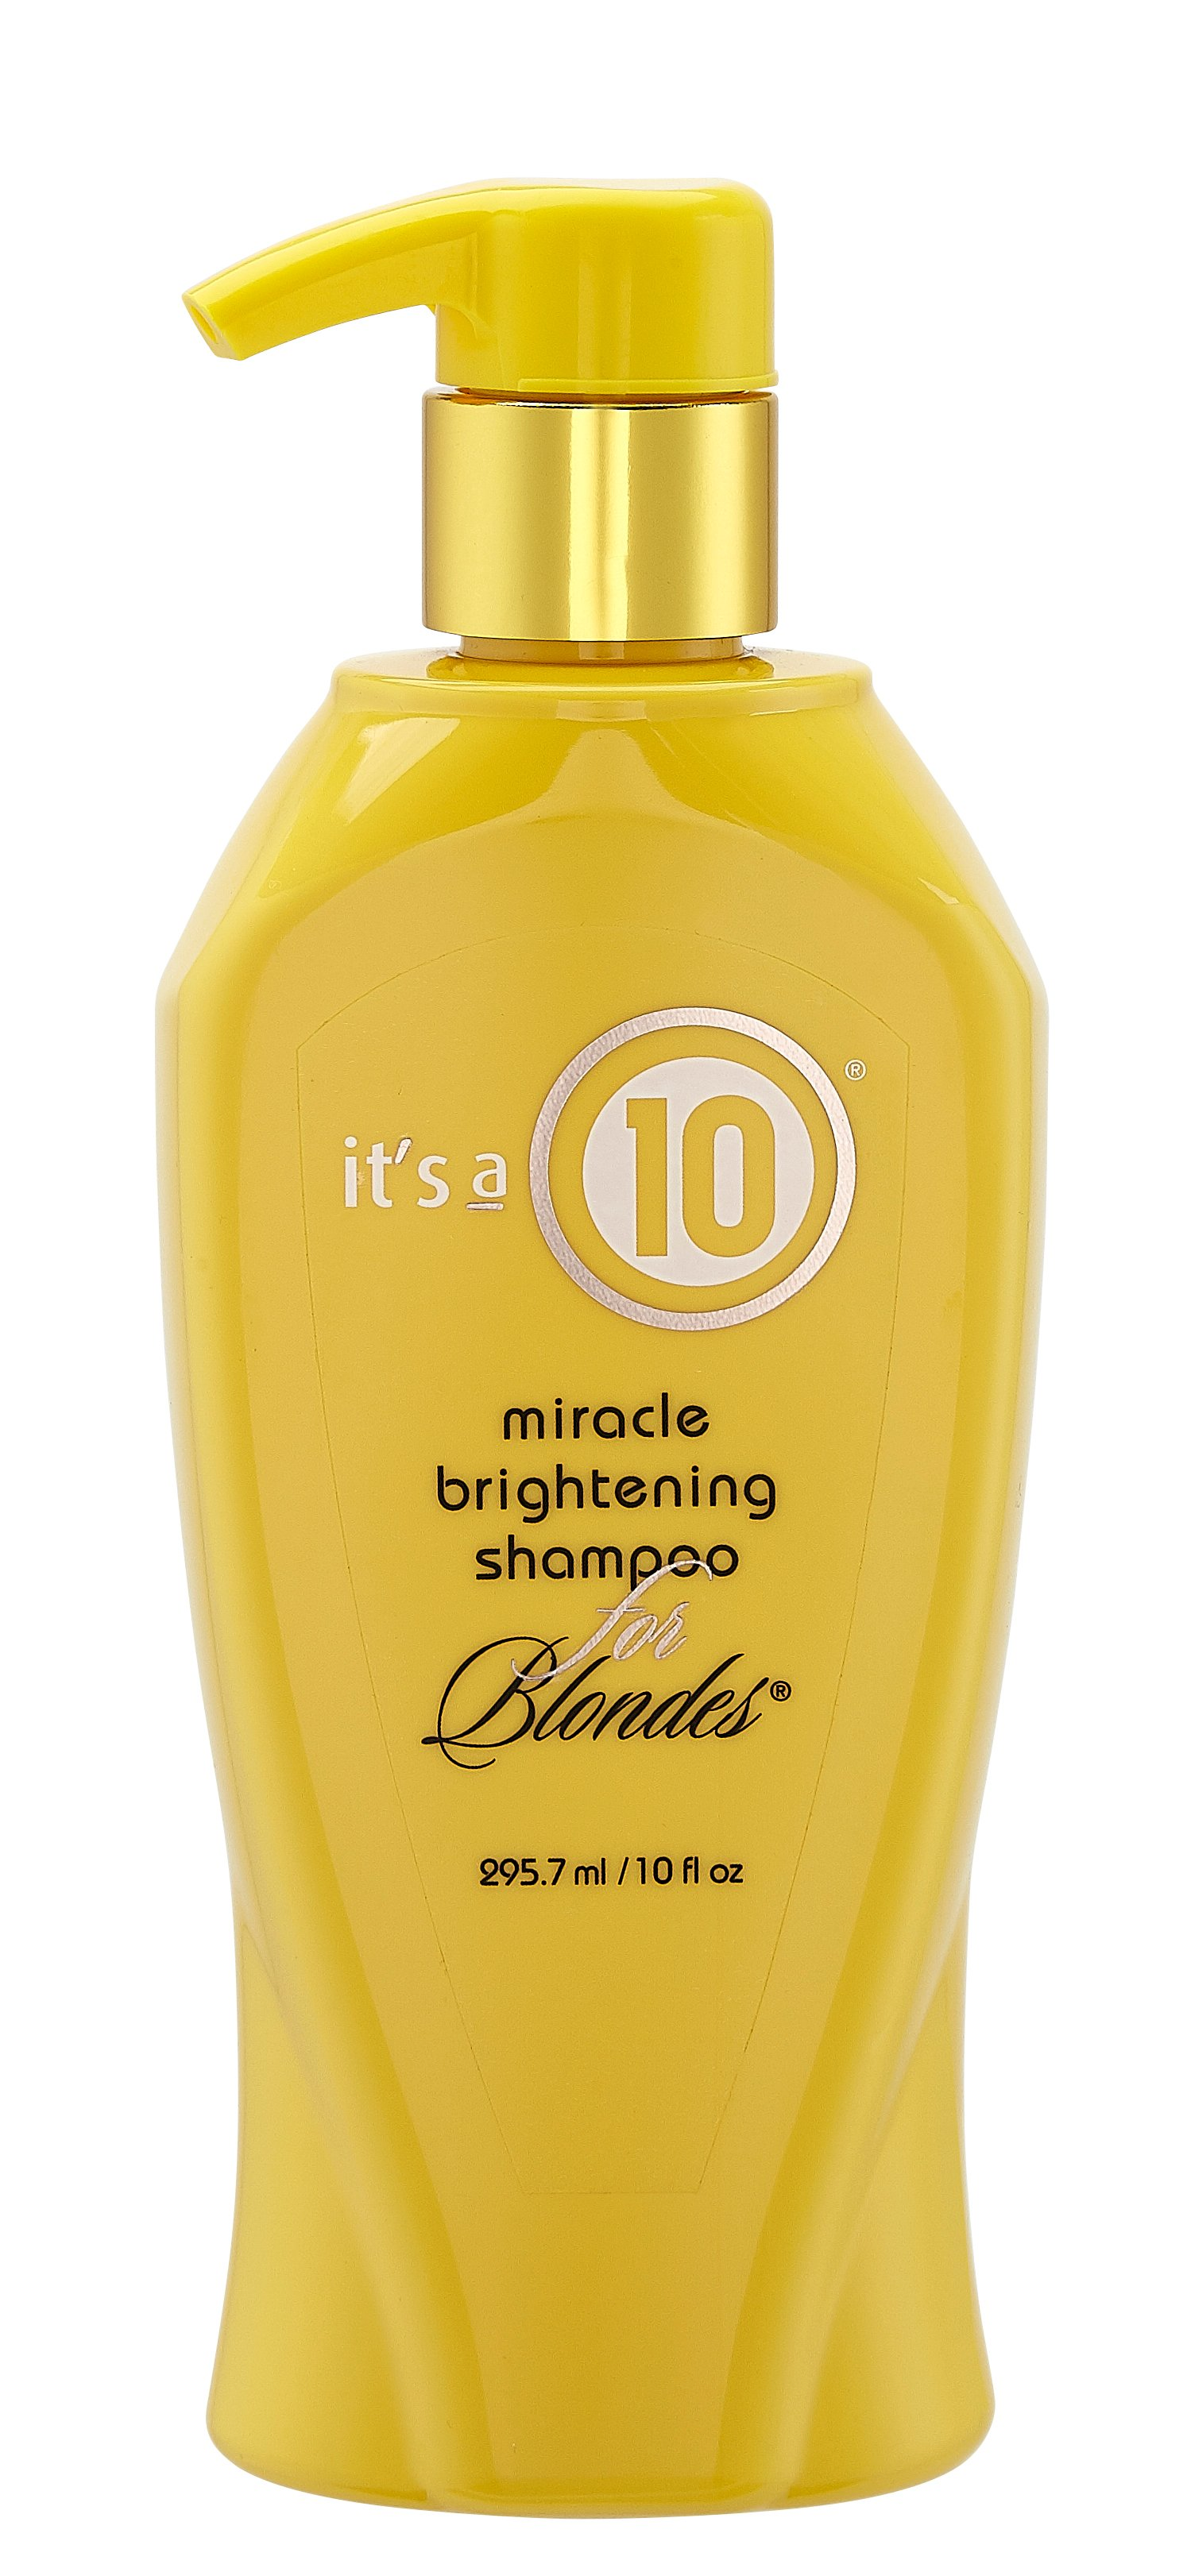 It's a 10 Expands Miracle Blonde Collection with Miracle Brightening Shampoo for Blondes